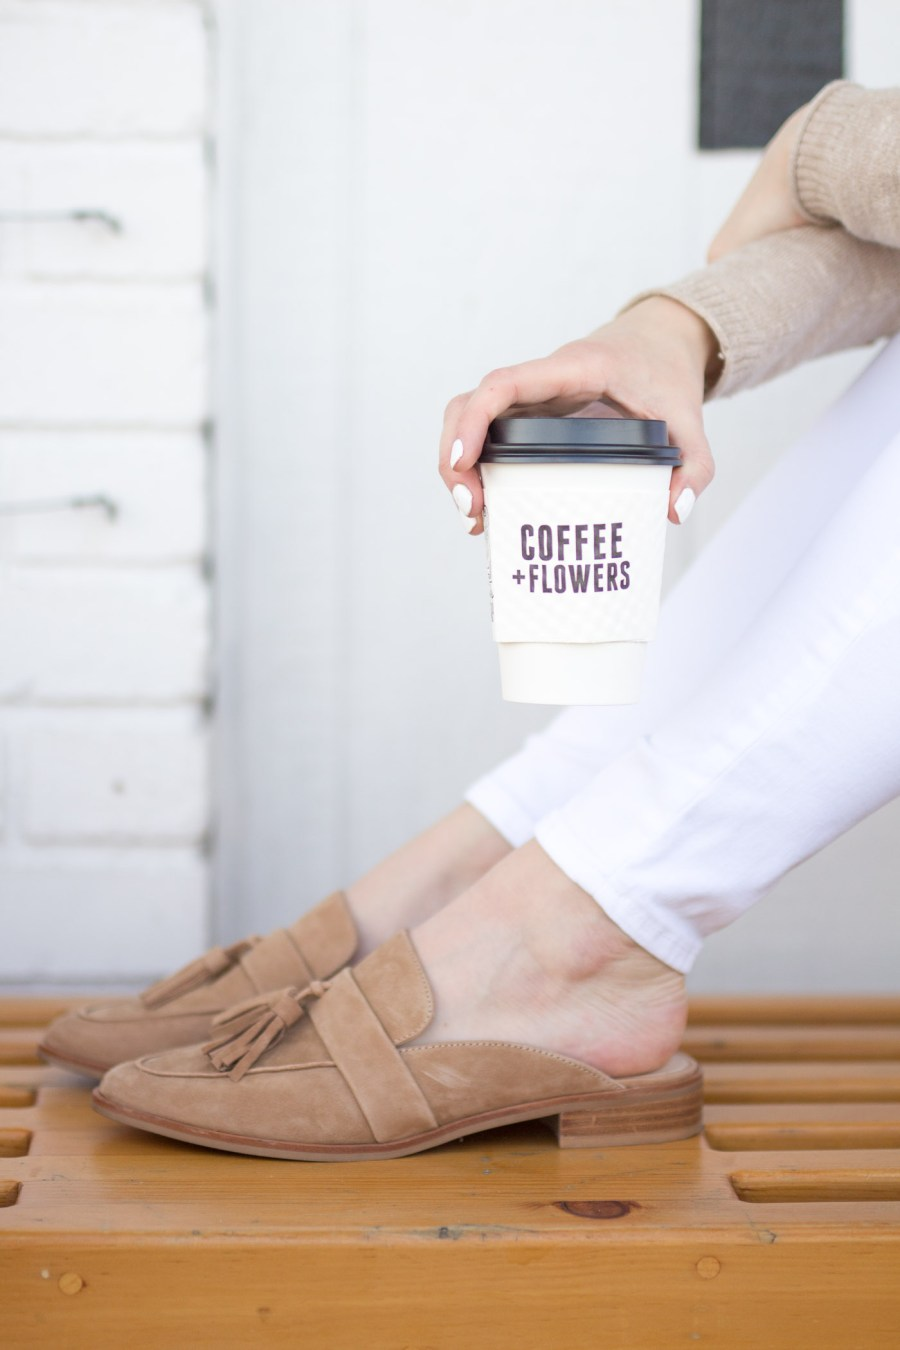 cute coffee shop in San Diego, Communcal Coffee, Coffee + Flowers, fashion blog, food blog, Treats and Trends, spring outfit, tassel mules